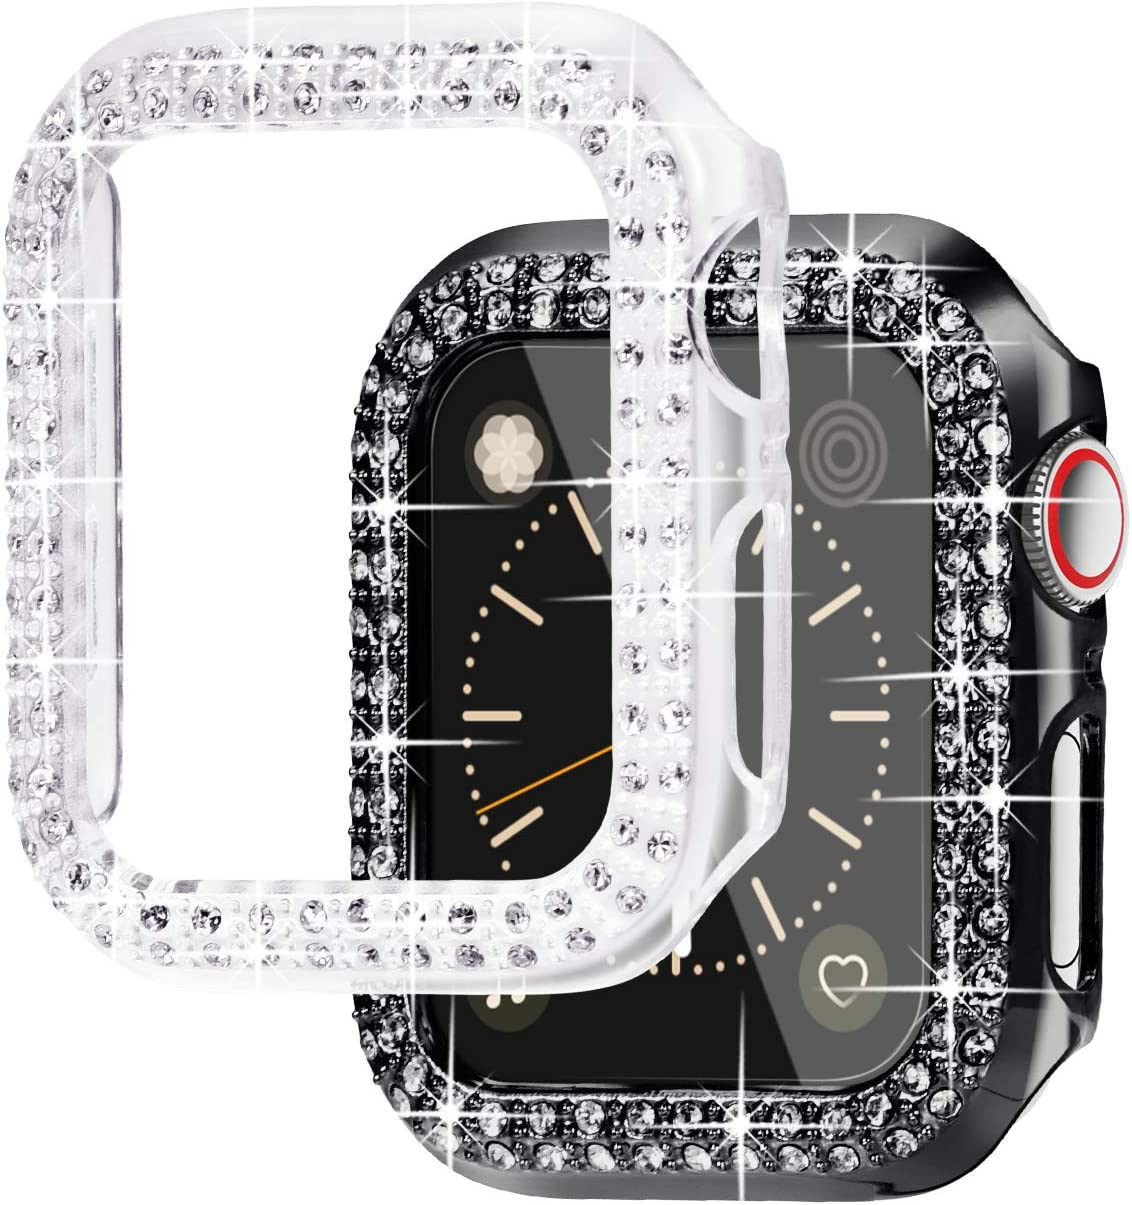 NewWays 2-Pack Bling Cases Compatible for Apple Watch 38mm 40mm 42mm 44mm, Protective Bumper for iWatch SE Series 6 5 4 3 2 1 (40mm, Black/Clear)